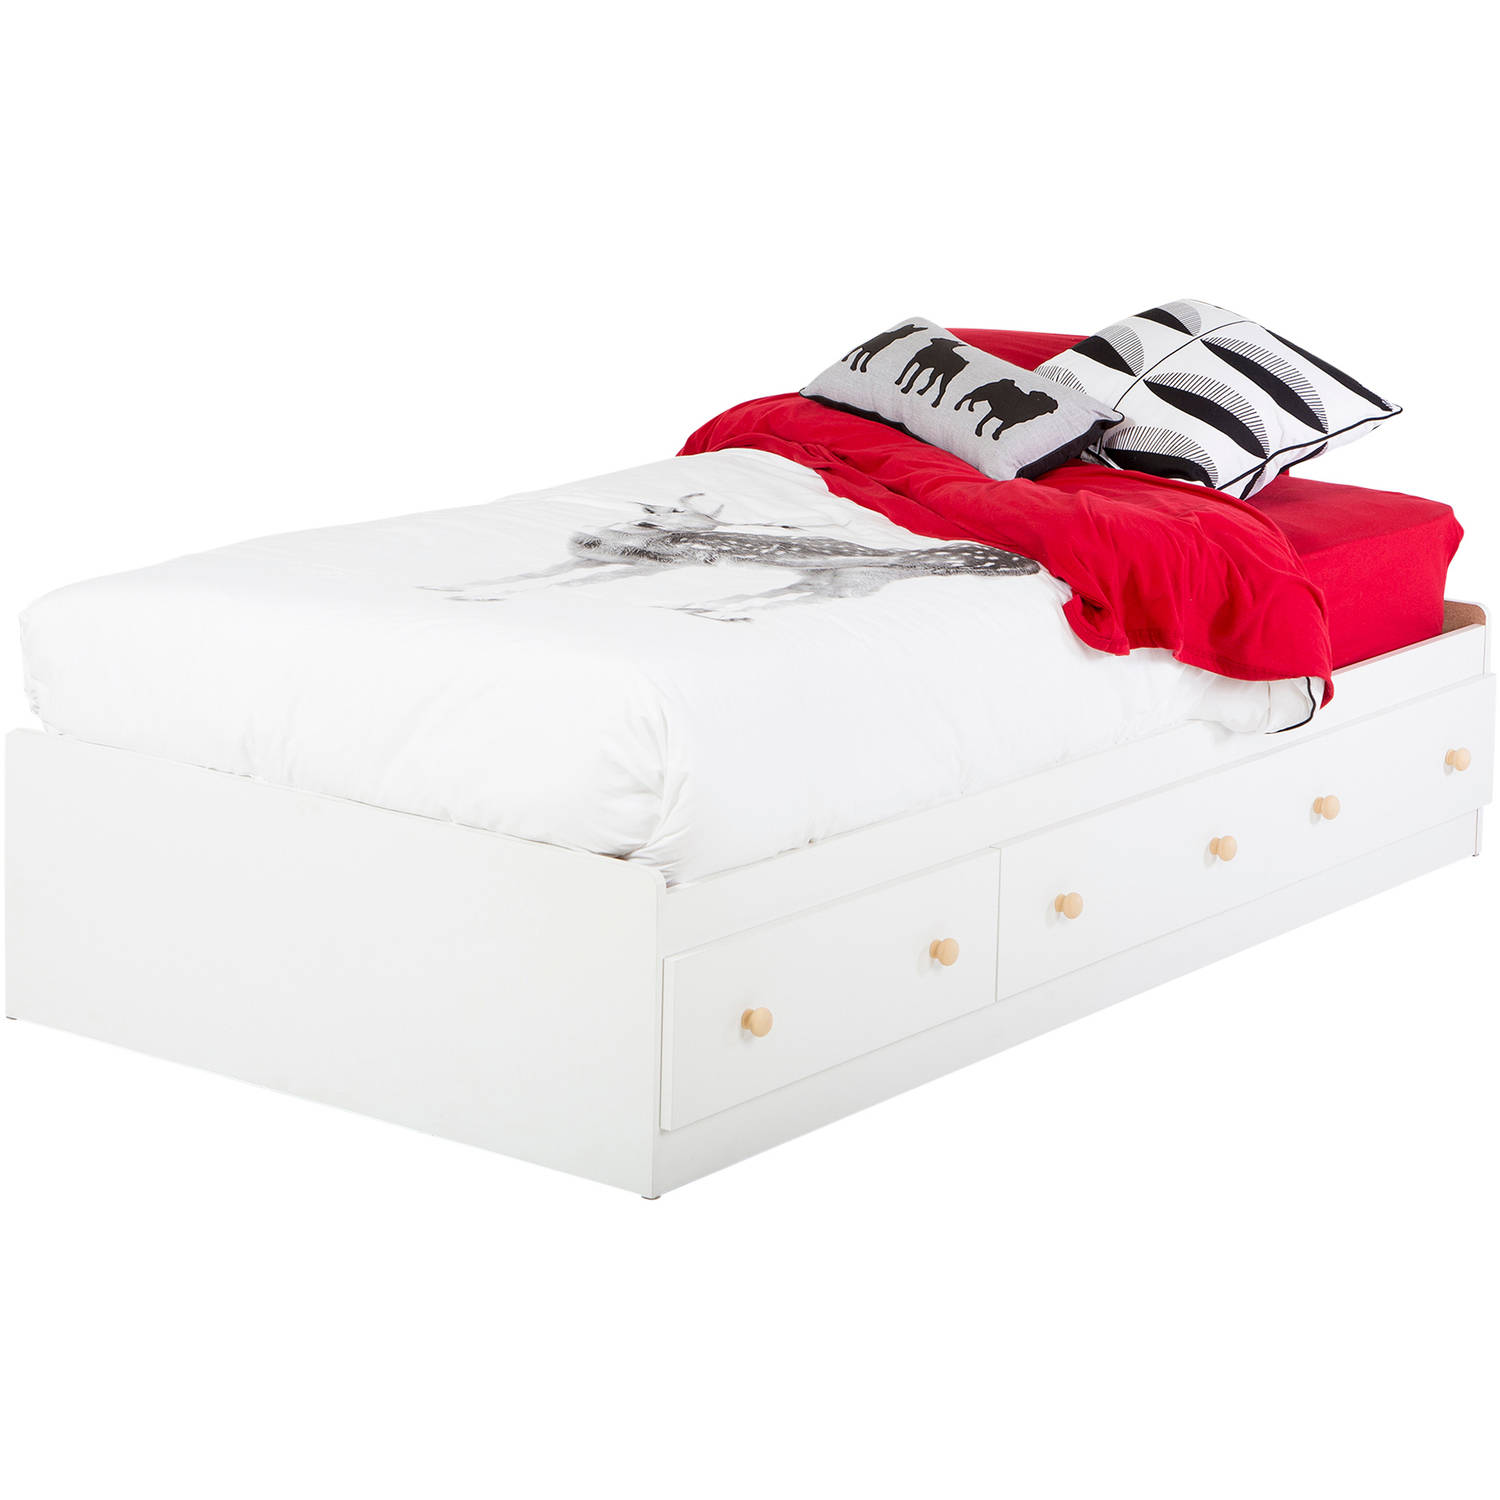 White twin bed with drawers - South Shore Summertime Twin Mates Bed With 3 Drawers 39 White And Maple Walmart Com